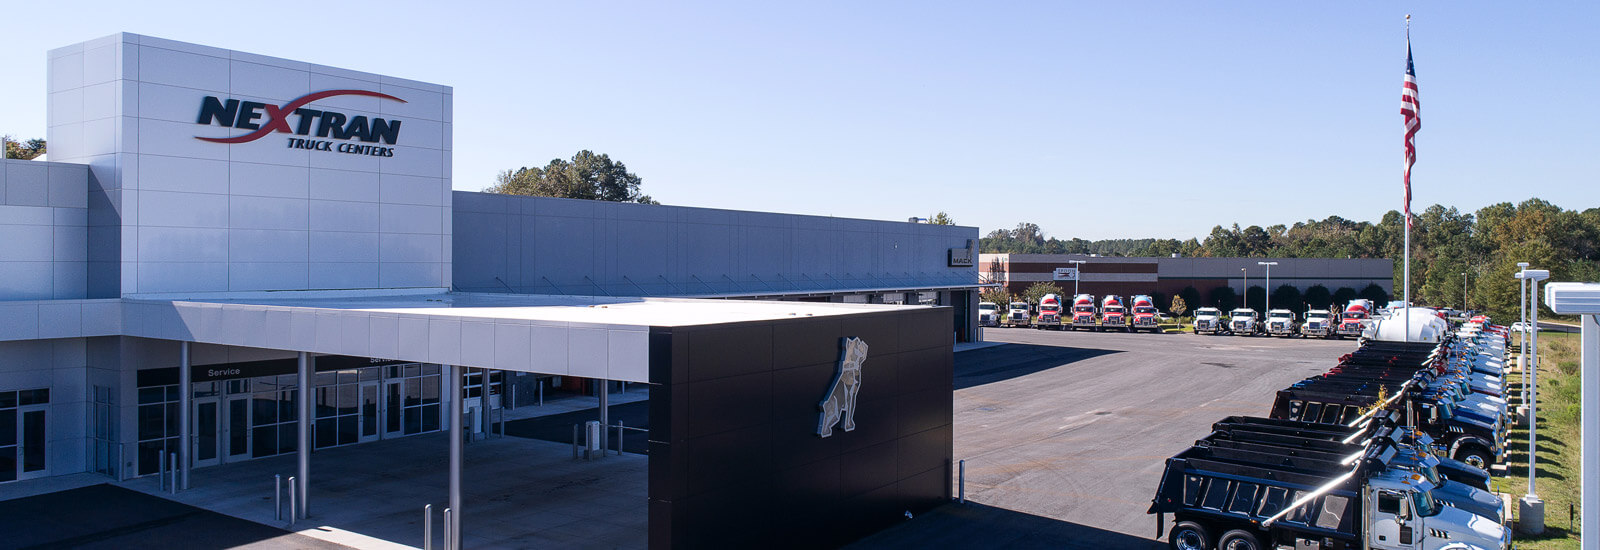 Outside View of Nextran building & Trucks